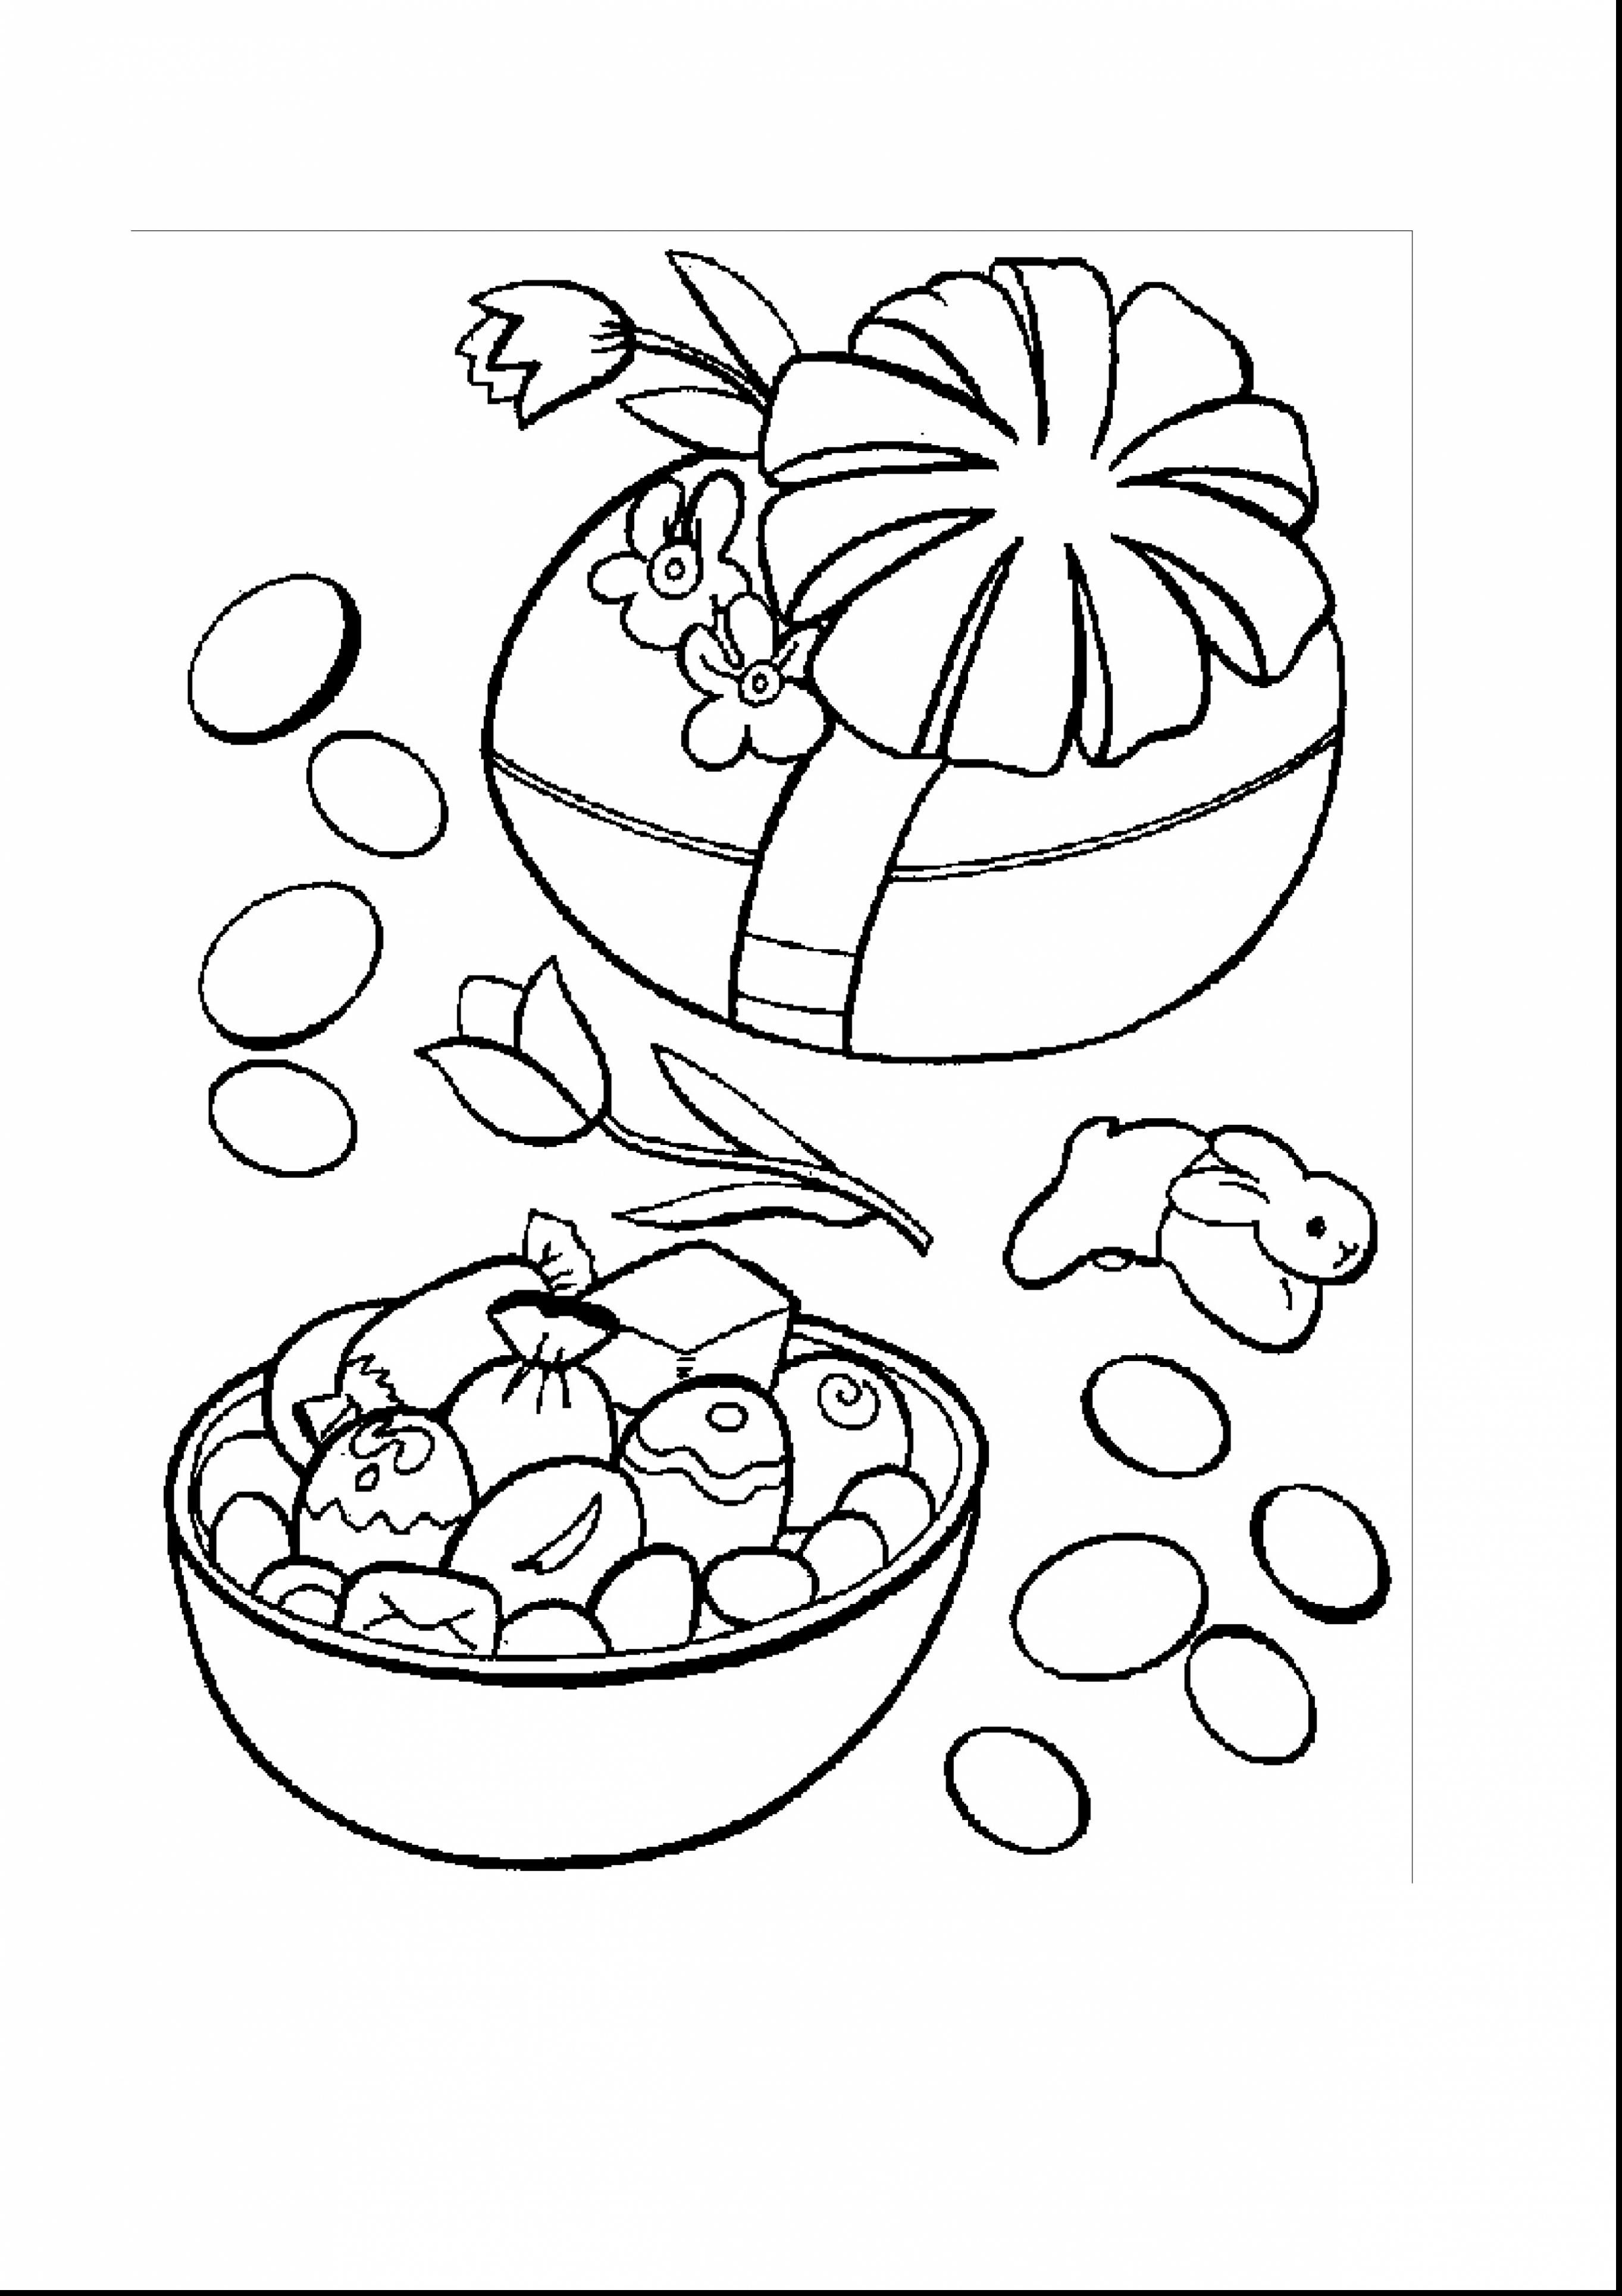 Easter Egg Colouring Pages 2